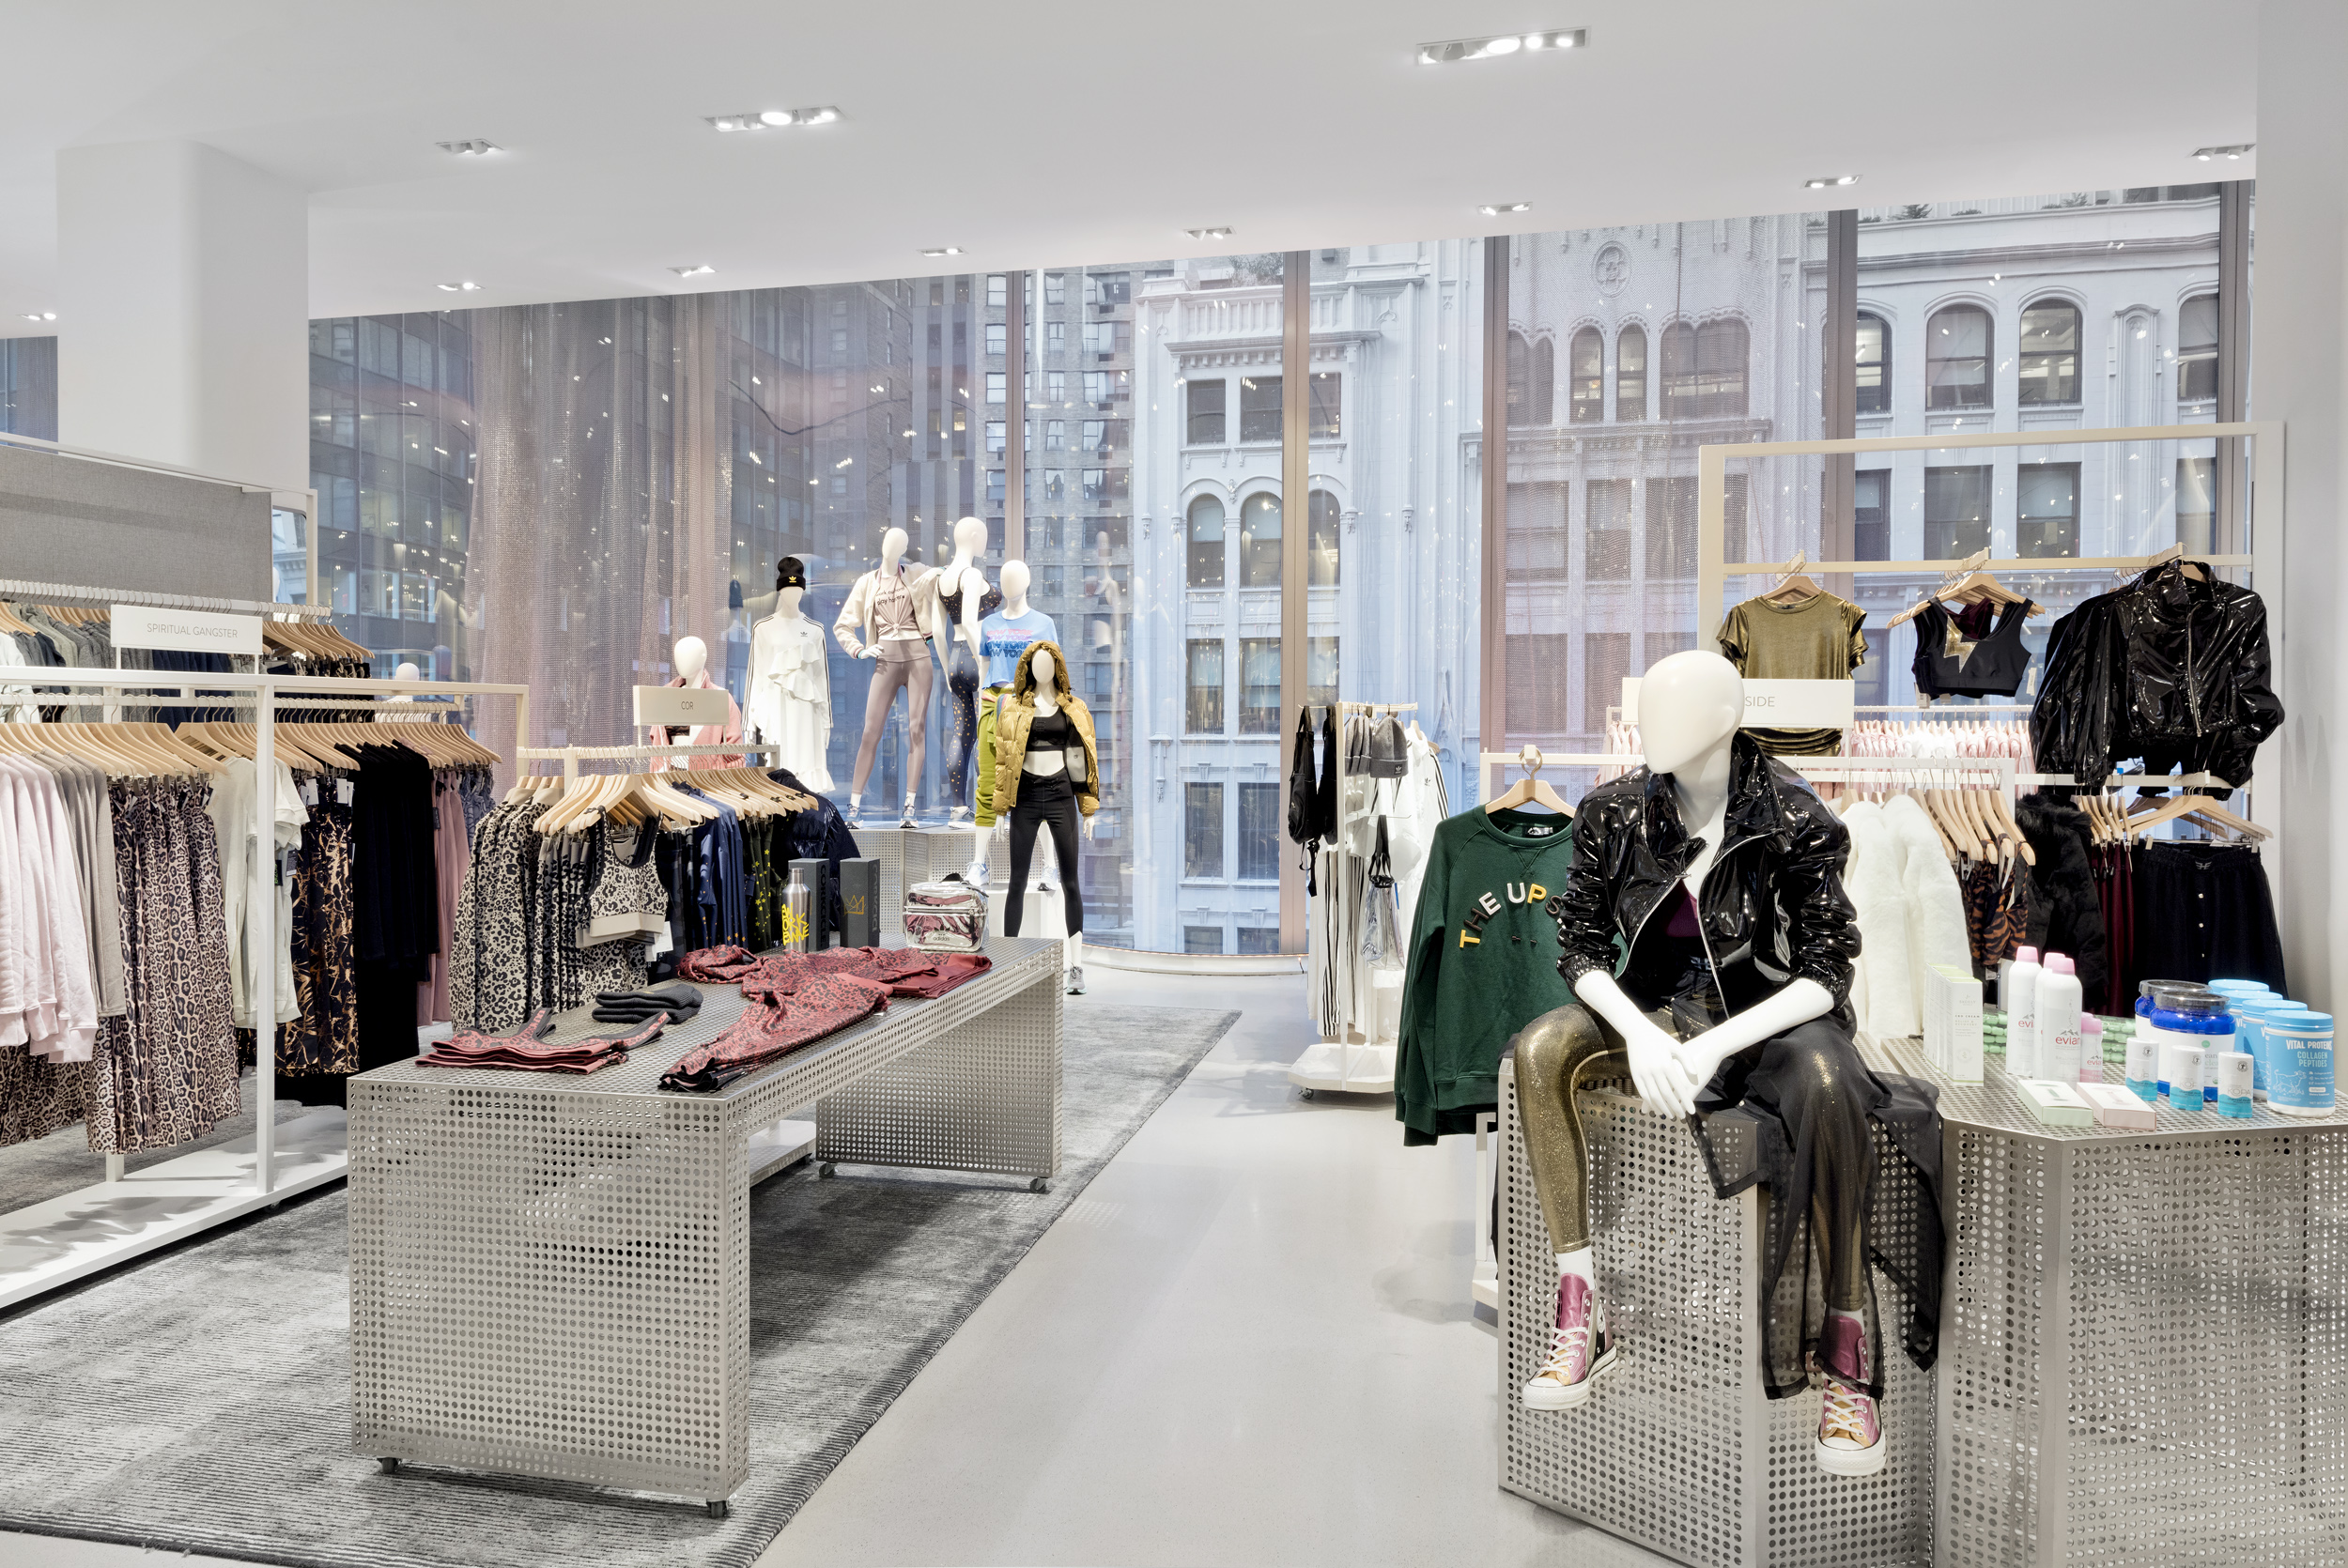 The active area at Nordstrom's Manhattan flagship.